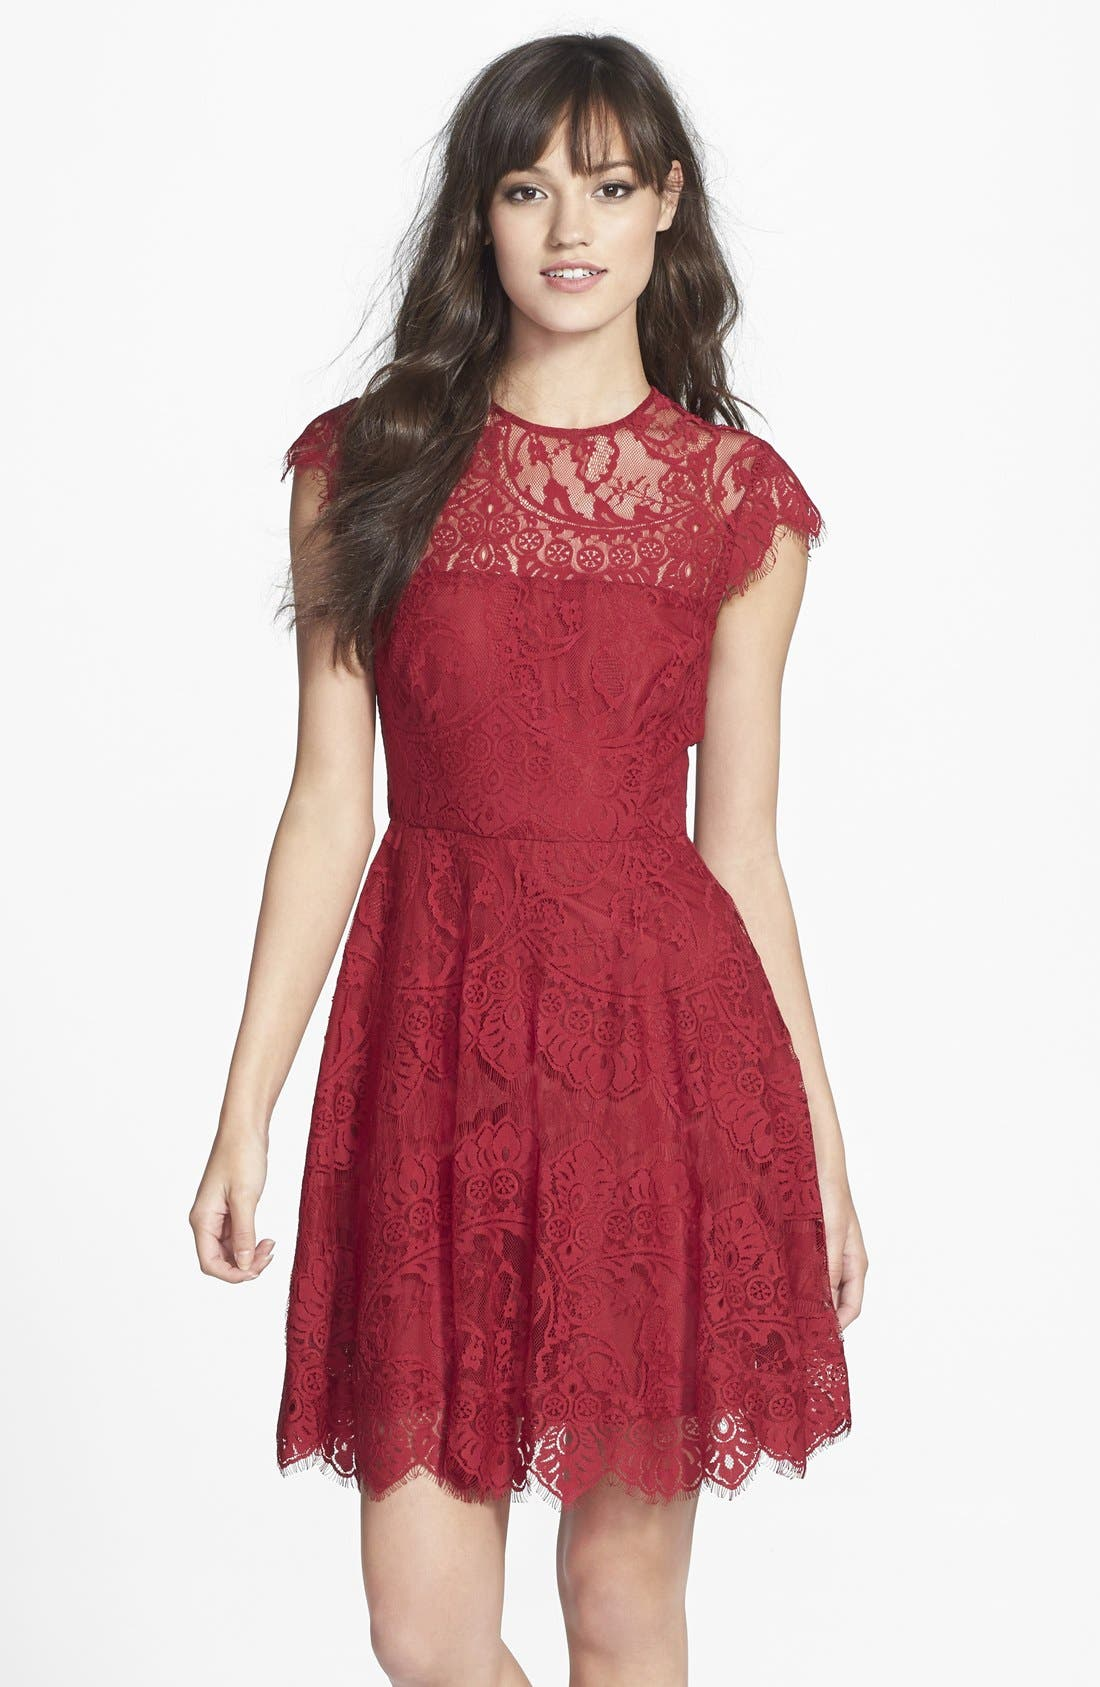 Main Image - BB Dakota 'Rhianna' Illusion Yoke Lace Fit & Flare Dress (Nordstrom Exclusive)